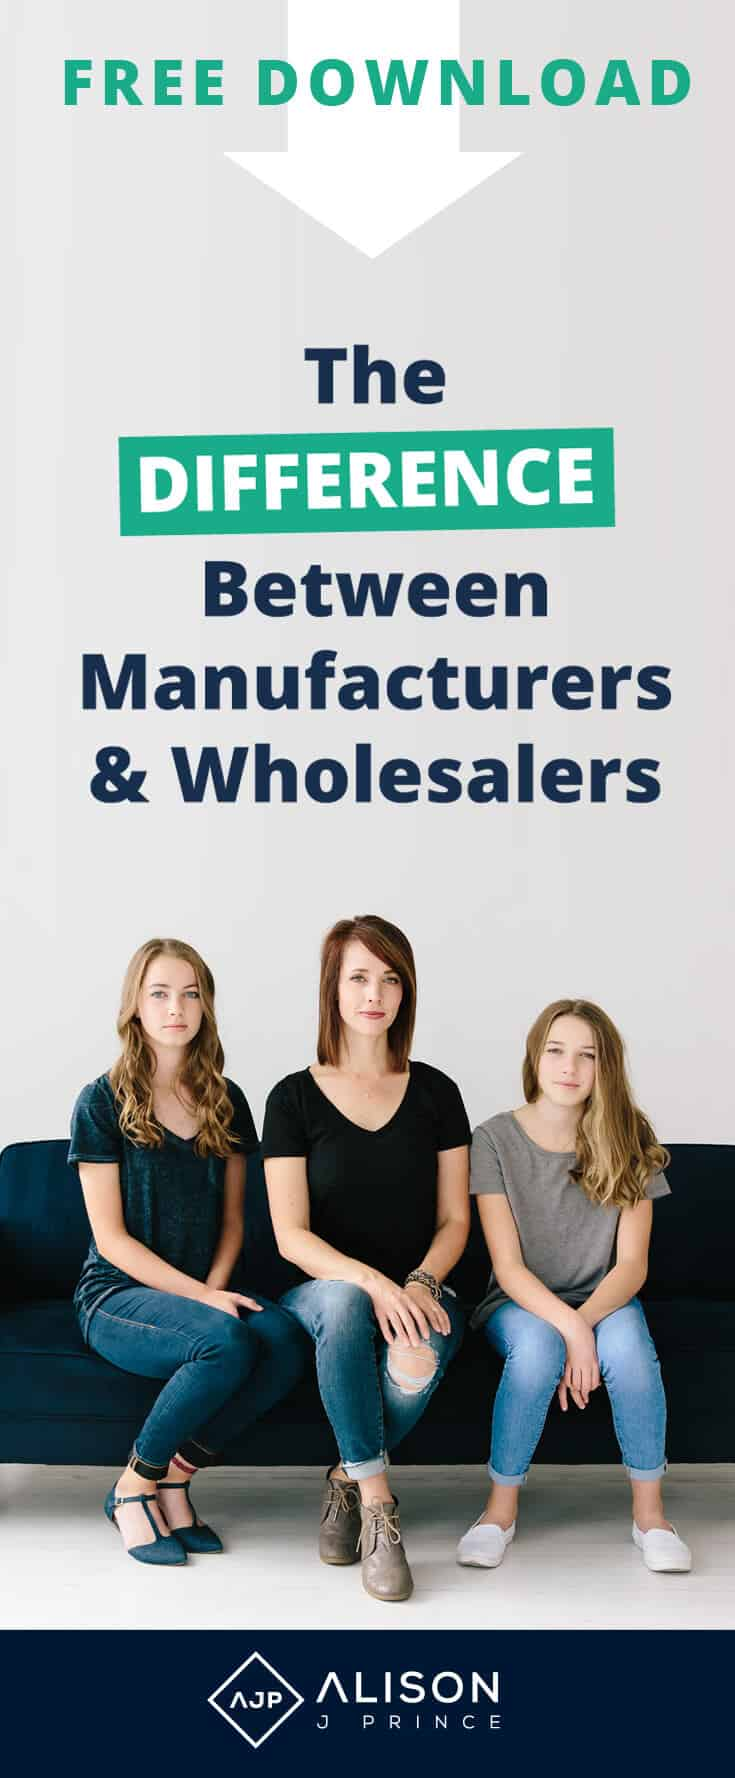 Manufacturers and Wholesalers. What's the difference? Ecommerce expert Alison Prince